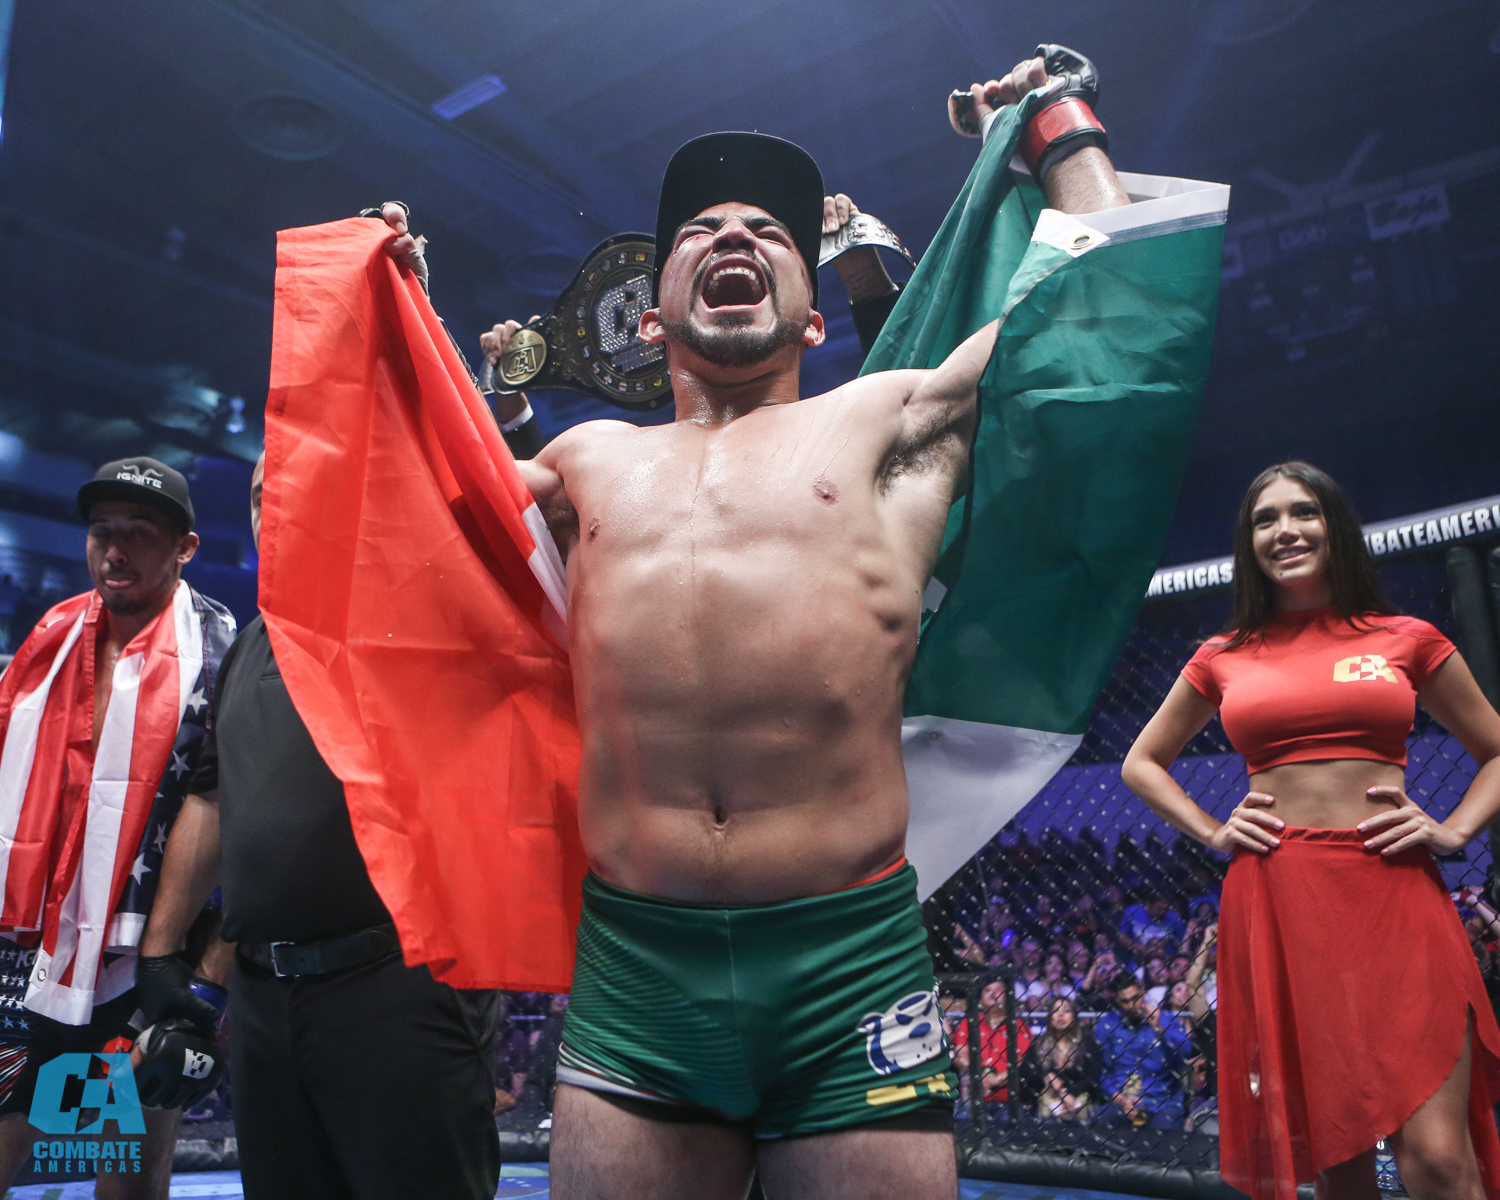 Combate Americas Rafa Gifted Garcia - MMA Fight Radio